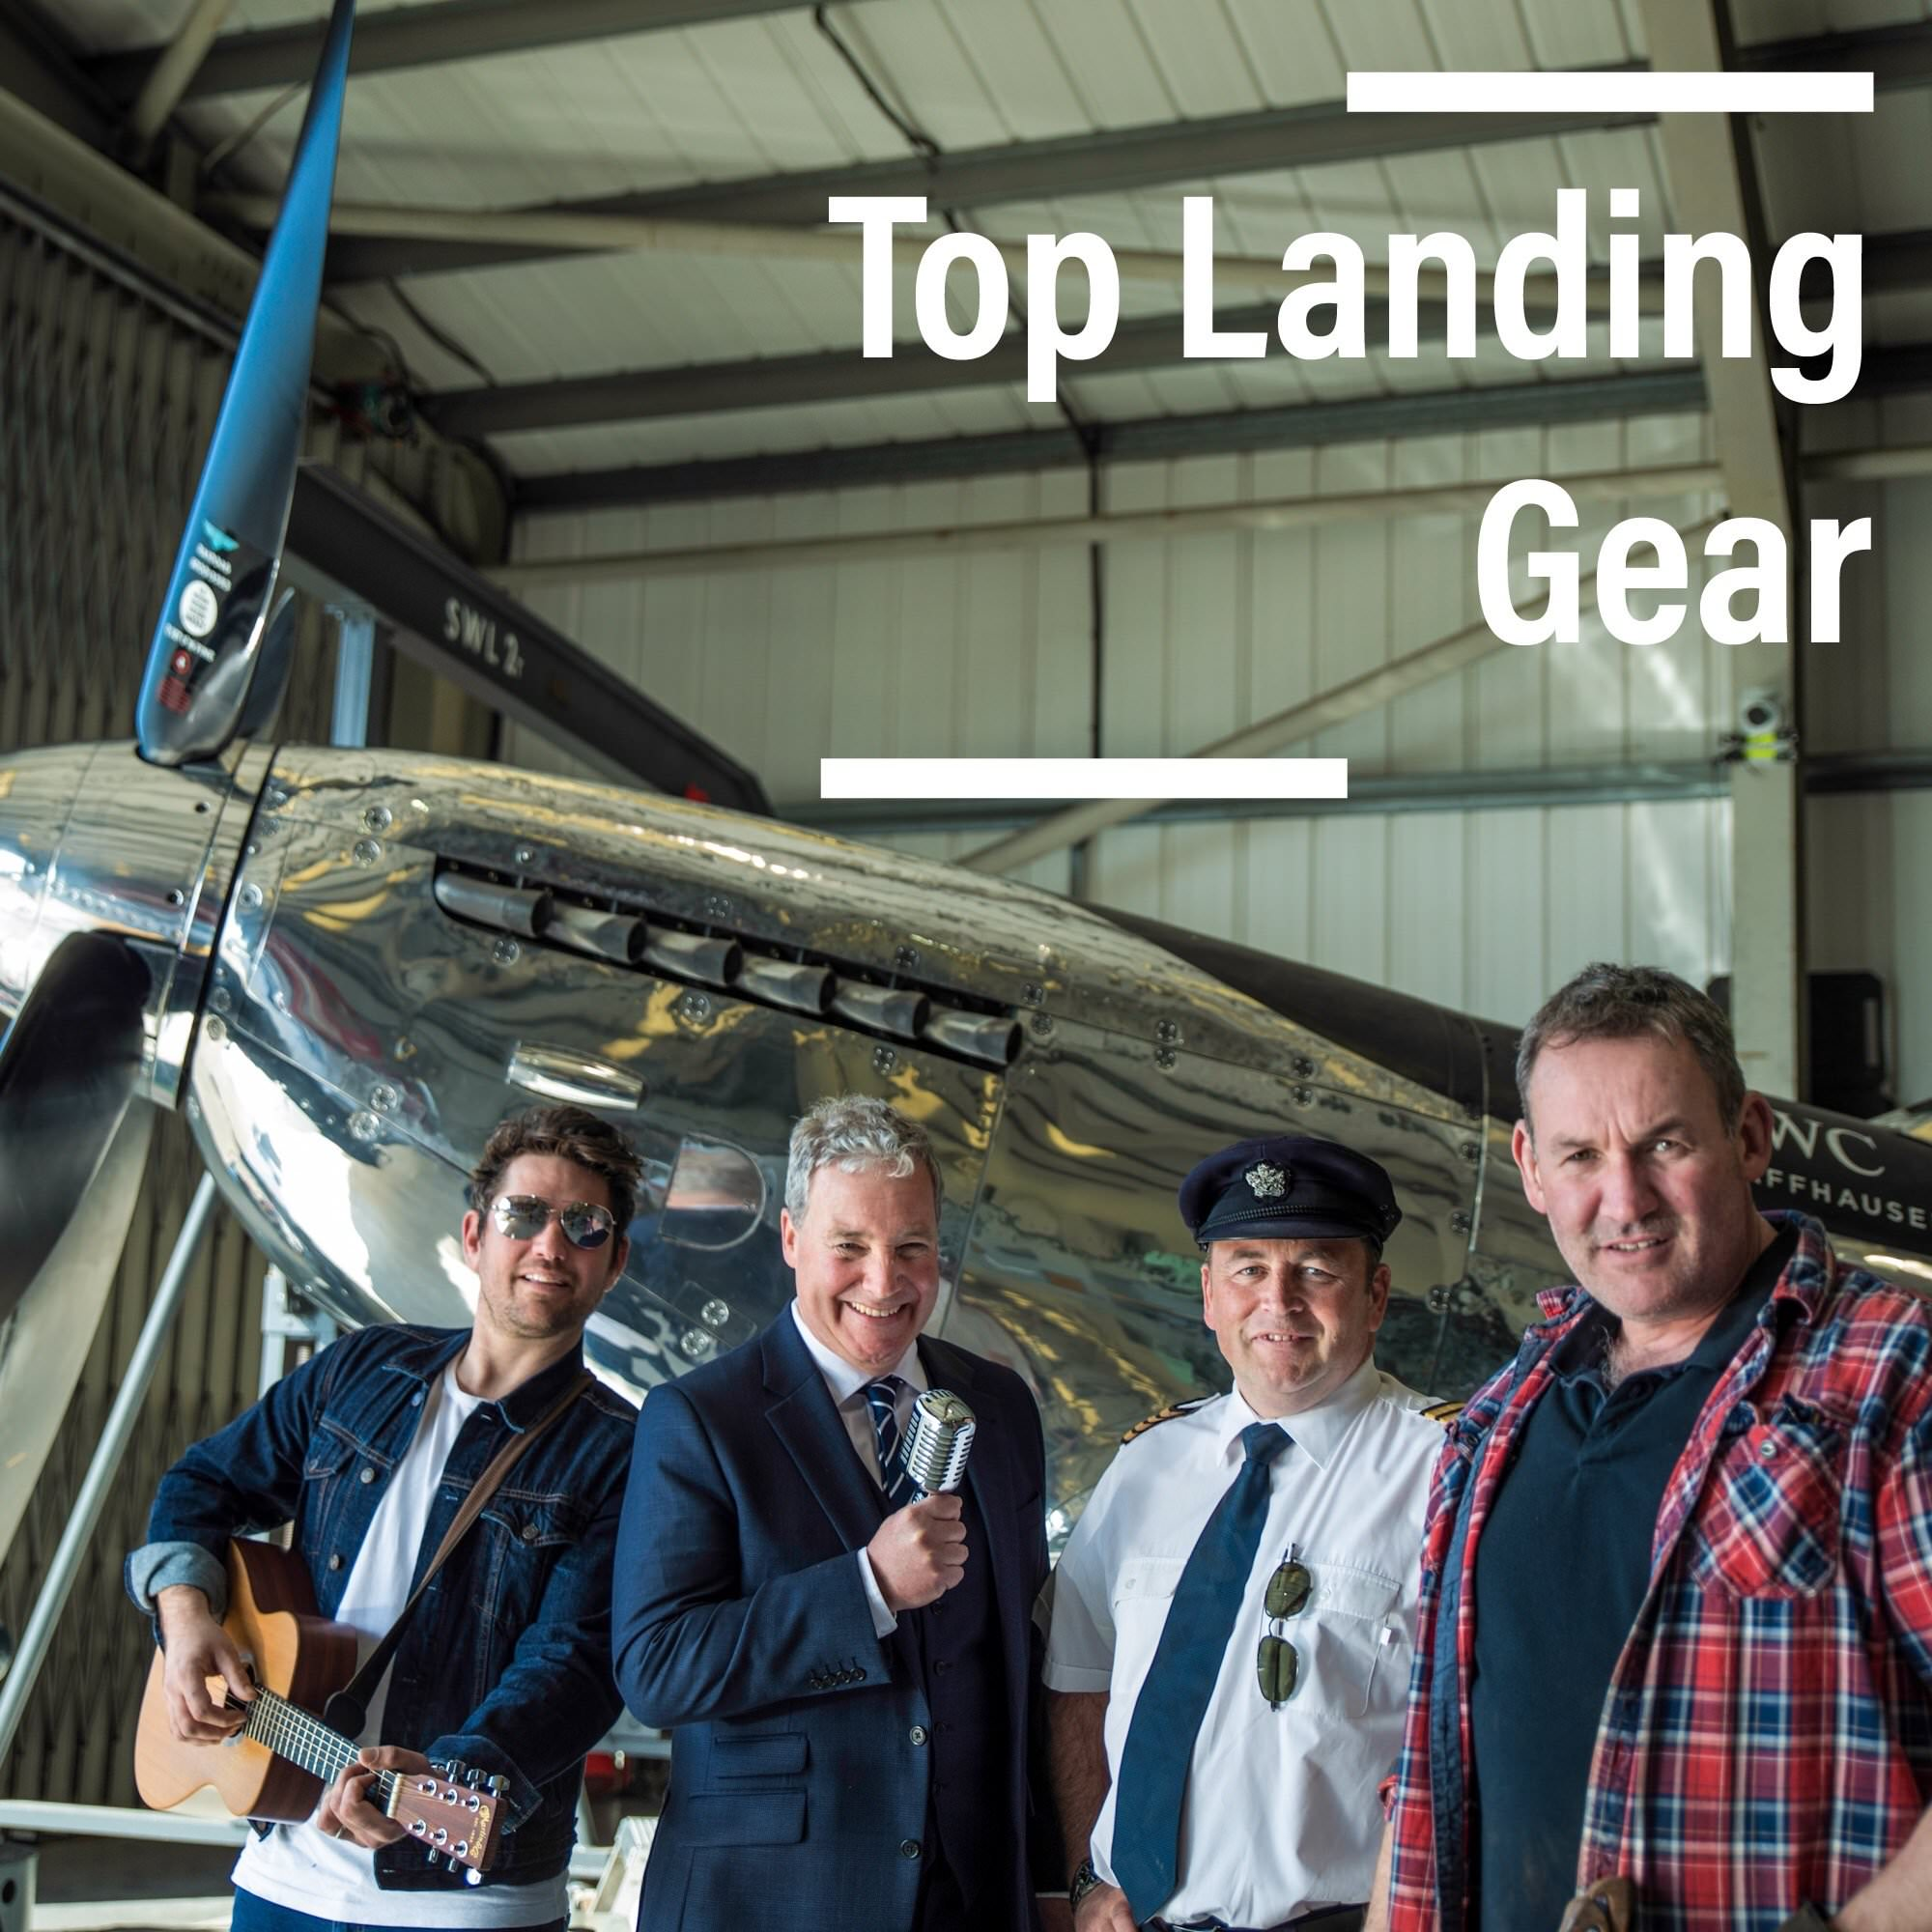 james cartner and scouting for girls, rob curling top landing gear